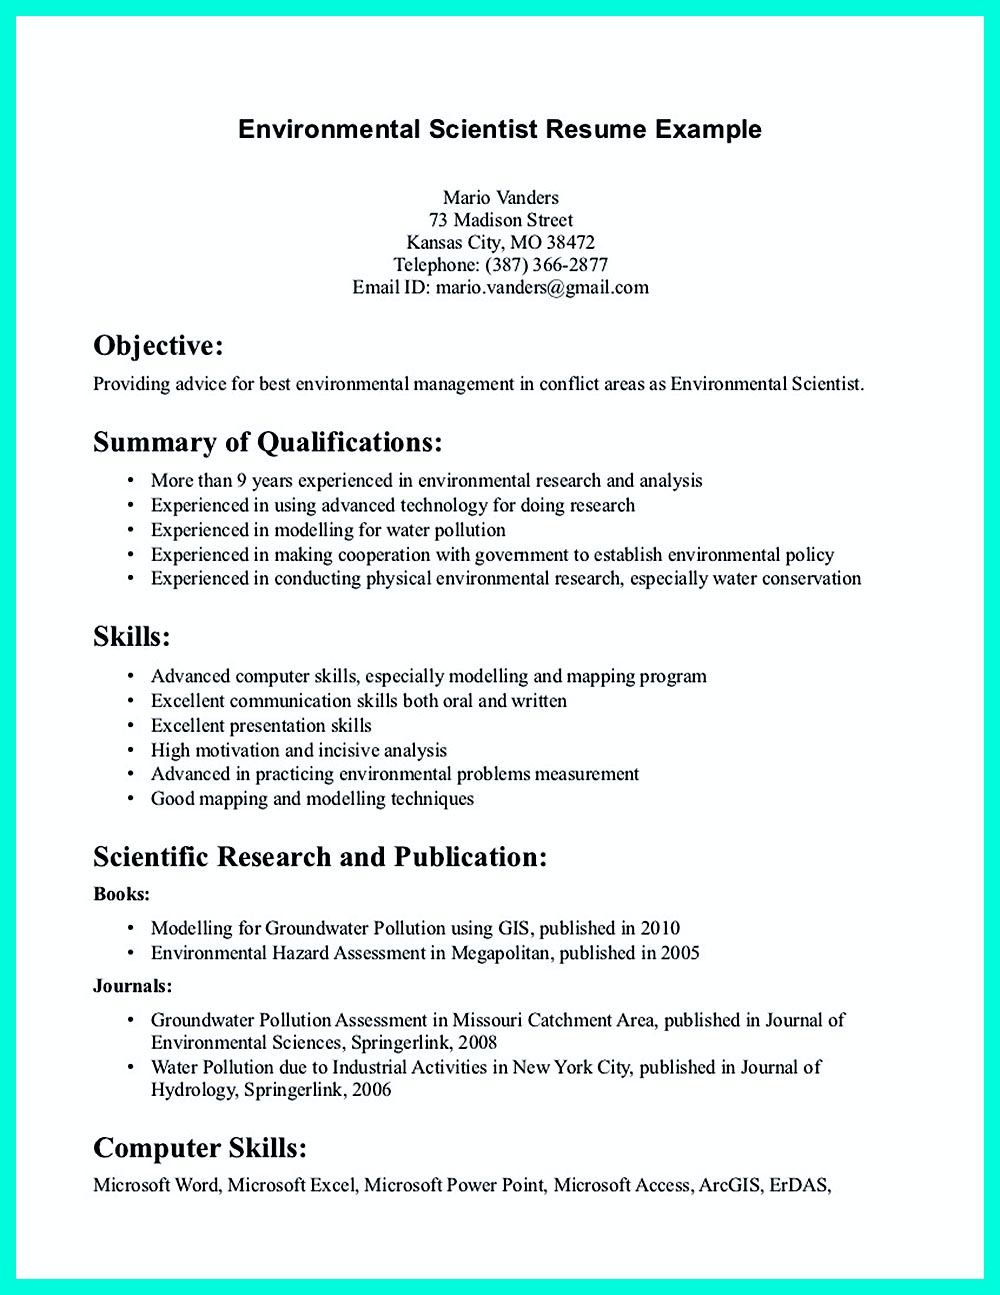 data scientist resume include everything about your education skill